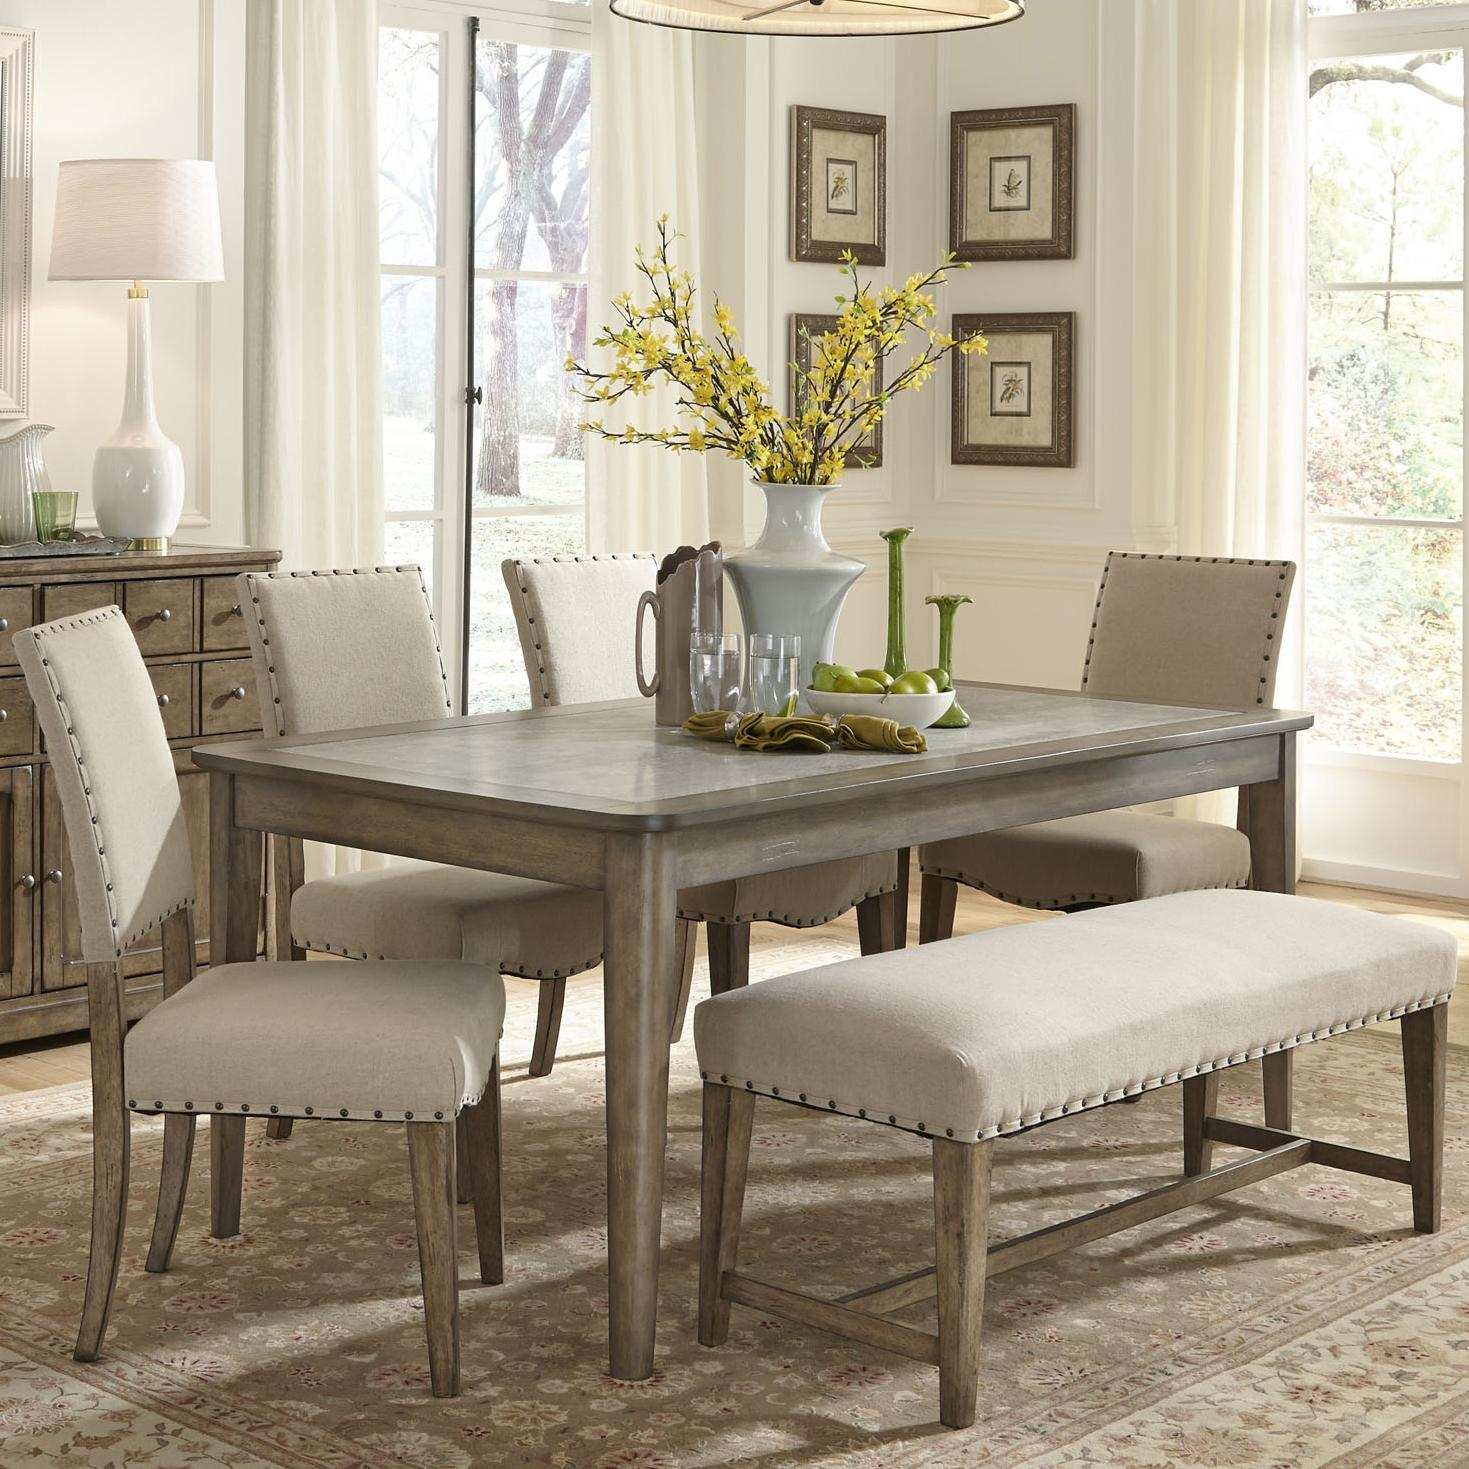 Rustic Casual 6 Piece Dining Table and Chairs Set with  : products2Flibertyfurniture2Fcolor2Fweatherford20645645 t38722B4xc6501s2Bb b0 from www.wolffurniture.com size 1469 x 1469 jpeg 285kB